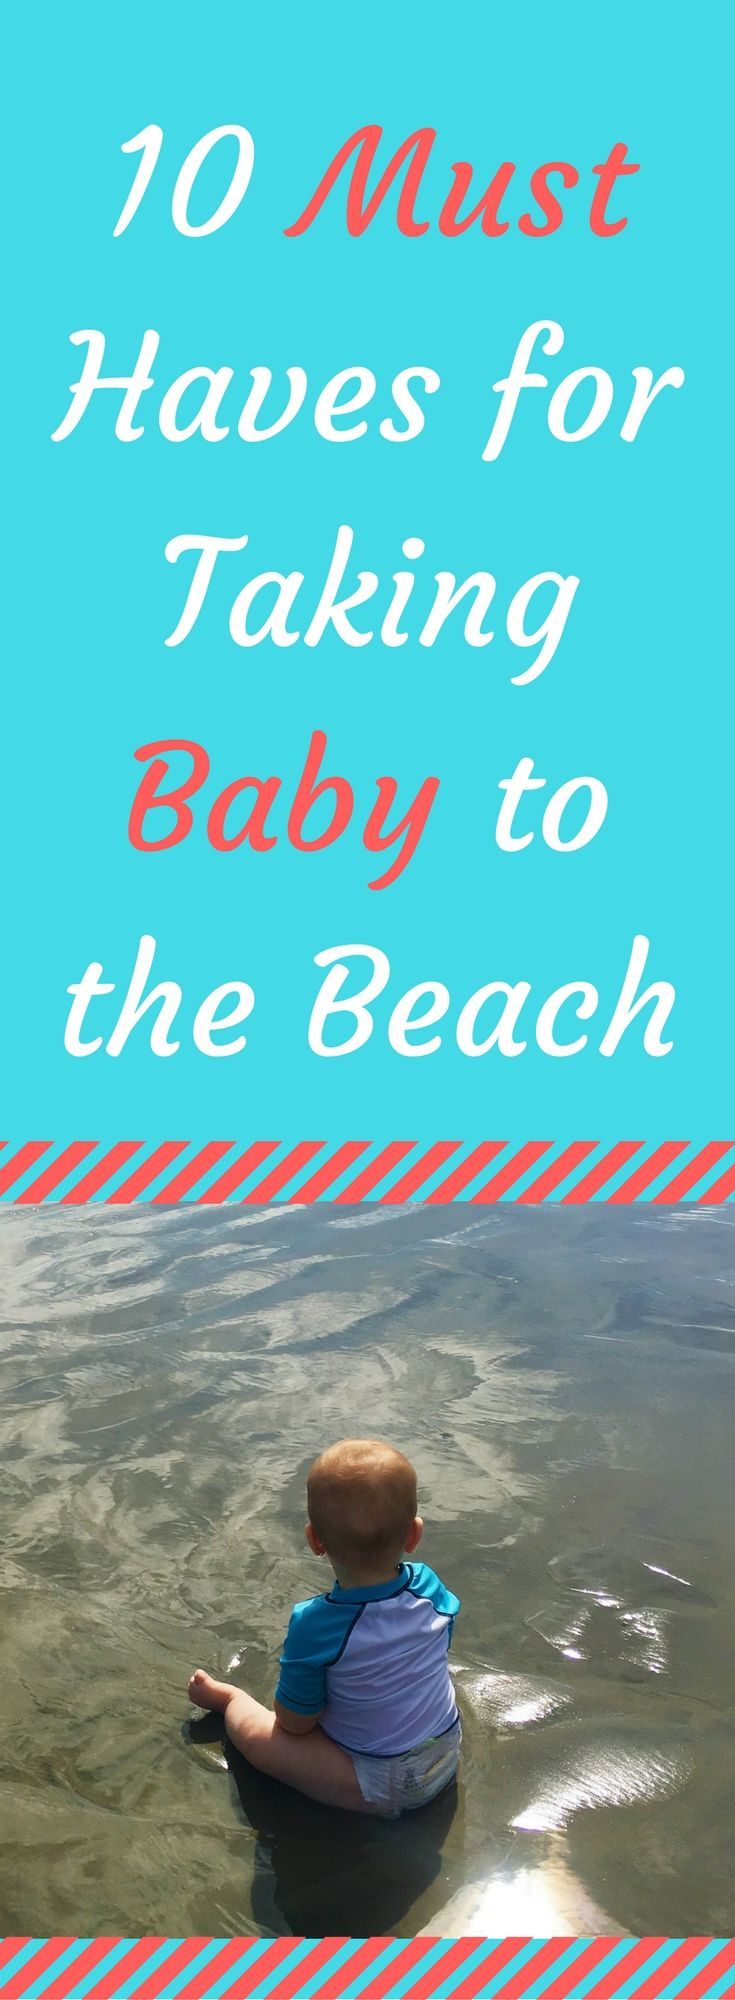 Must Haves For Taking Baby to the Beach | Beach Must Haves | Take Baby to the Beach | Beach Trip with Baby | Beach with Toddler | Beach Must Haves | Family Vacation | Beach Baby | Parenting Advice | Advice for New Moms